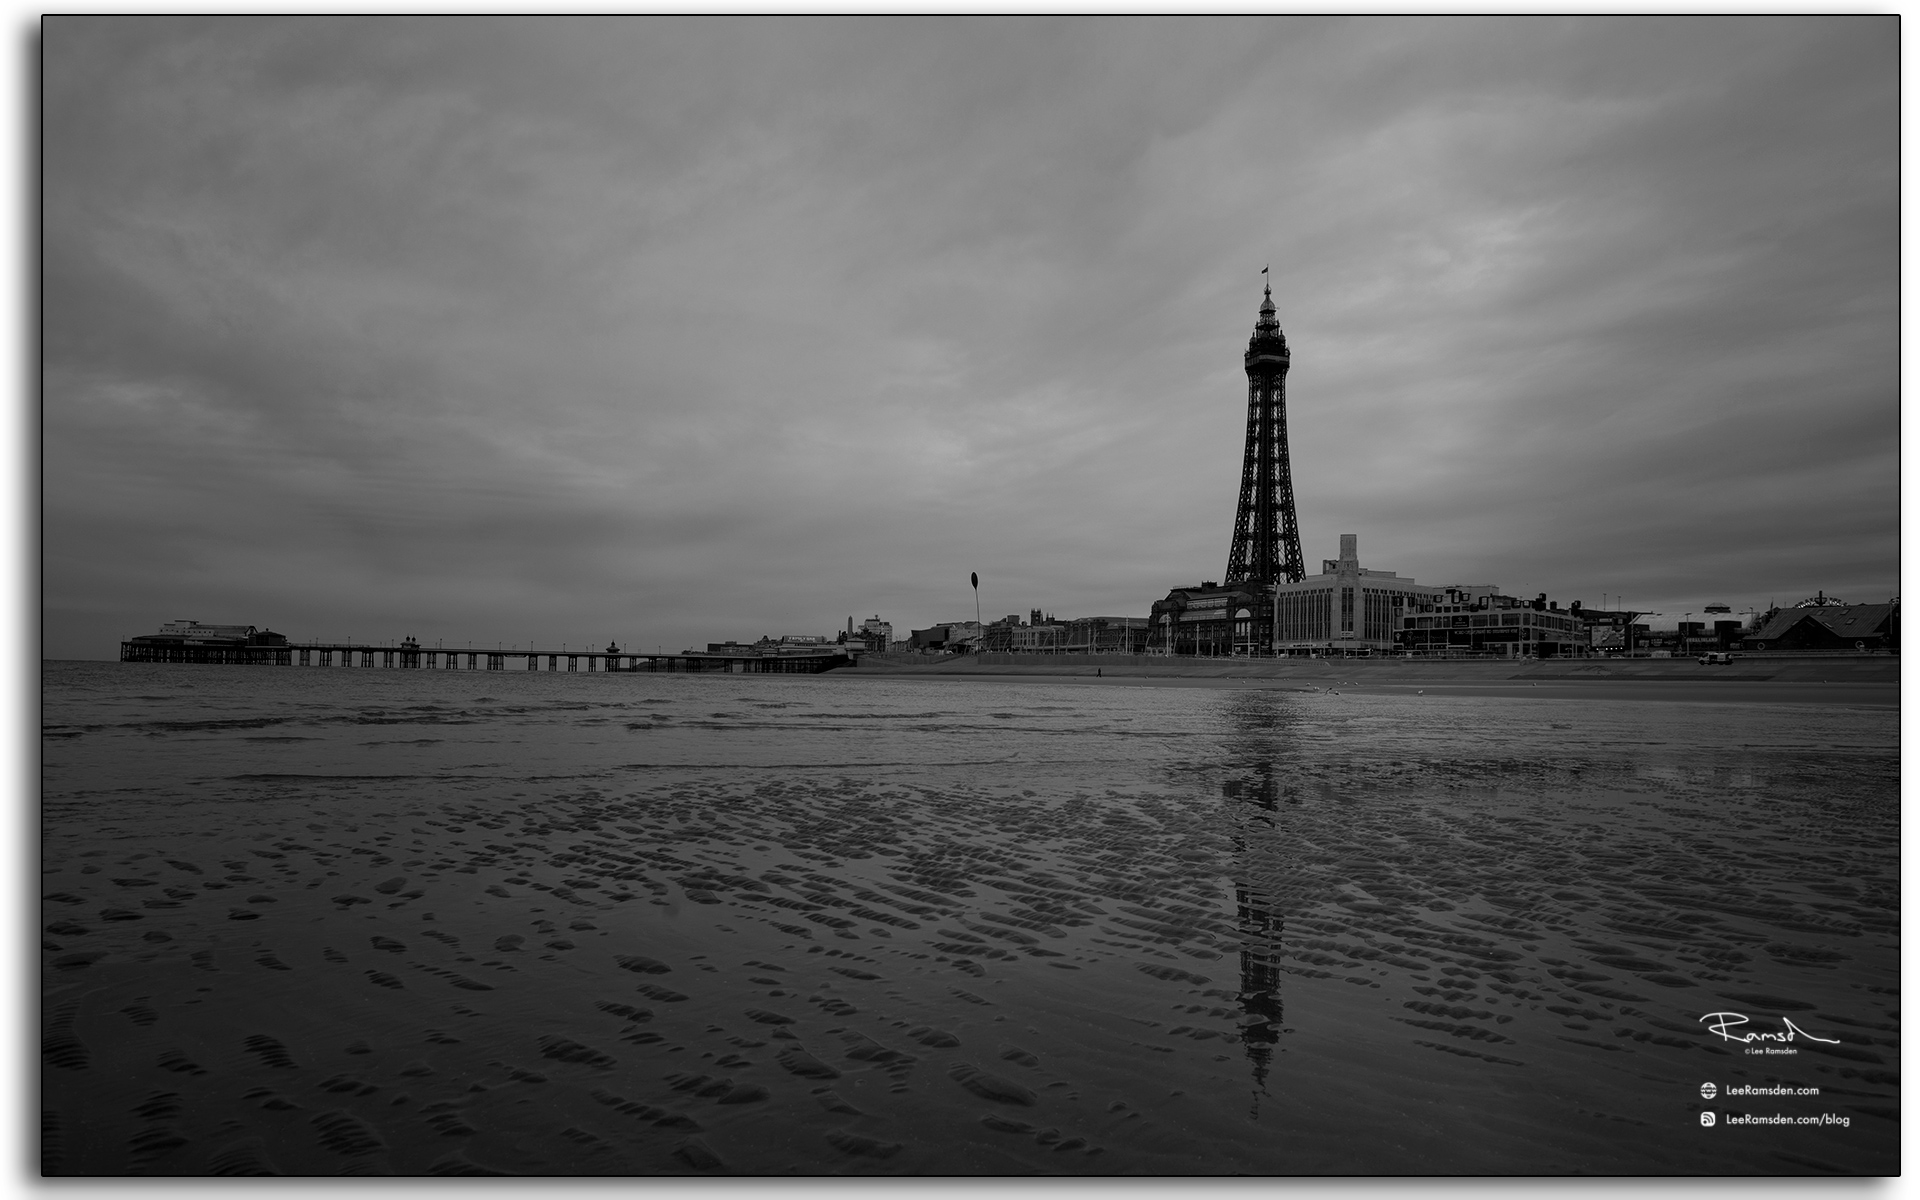 Blackpool, Blackpool tower, monochrome, black white, reflection, Lancashire photographer, Lee Ramsden